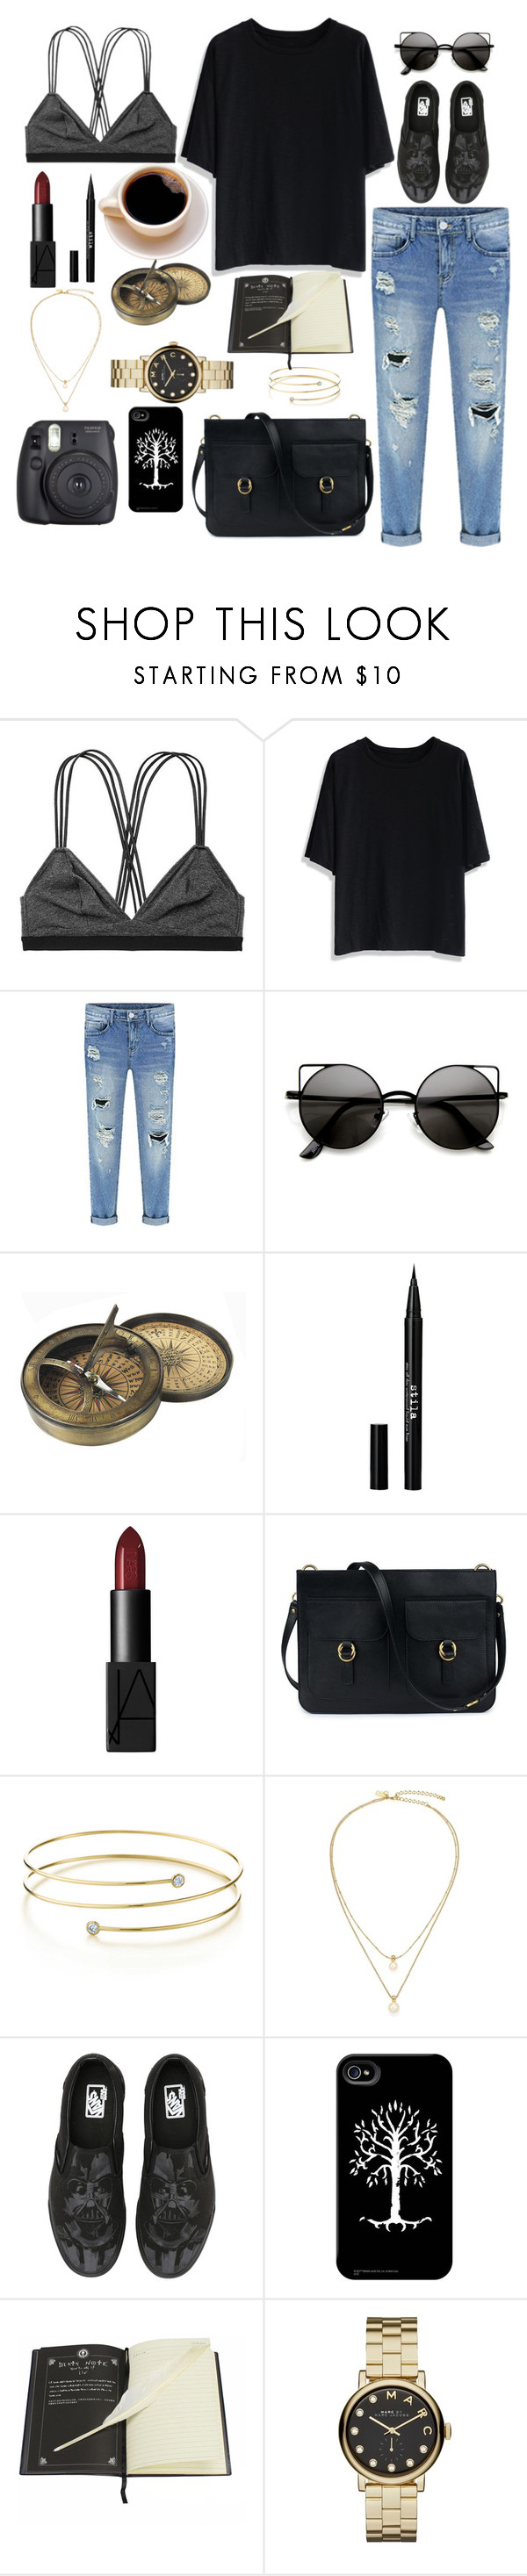 """""""Hipster"""" by lovelydgessy ❤ liked on Polyvore featuring Victoria's Secret, Chicwish, Stila, NARS Cosmetics, Elsa Peretti, Kate Spade, Vans, Marc by Marc Jacobs and Fuji"""